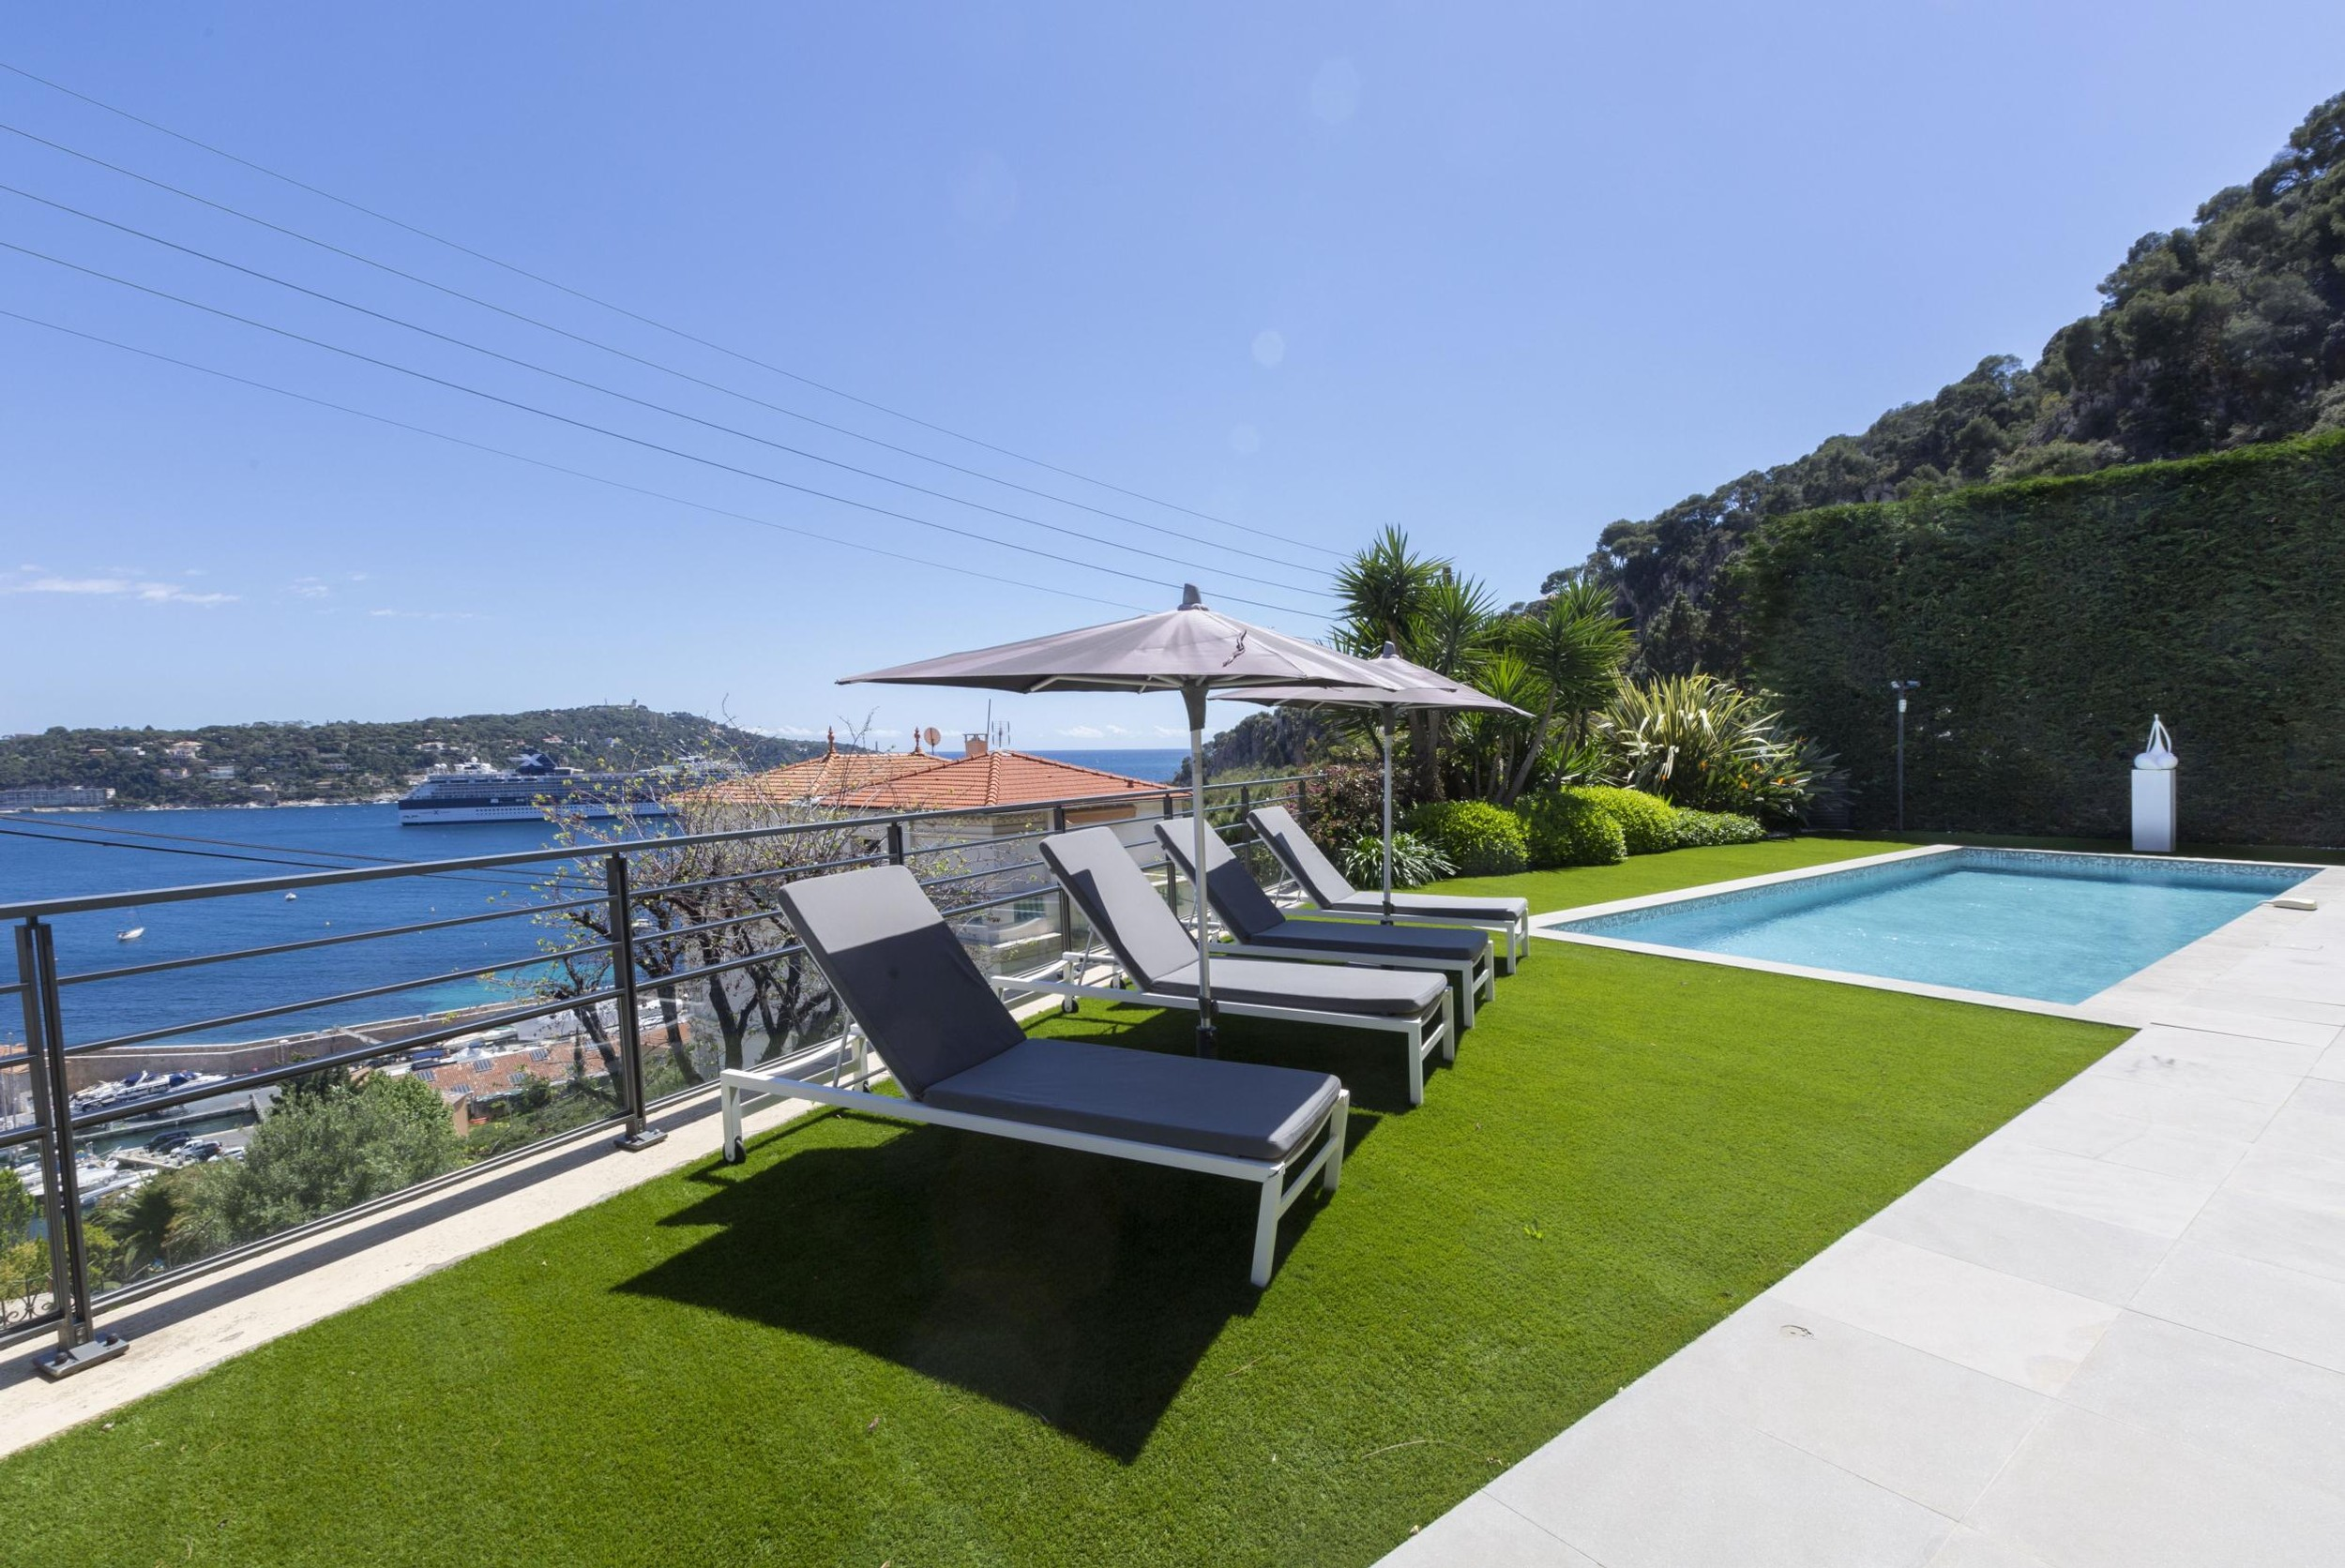 Real Estate in Villefranche Sur Mer